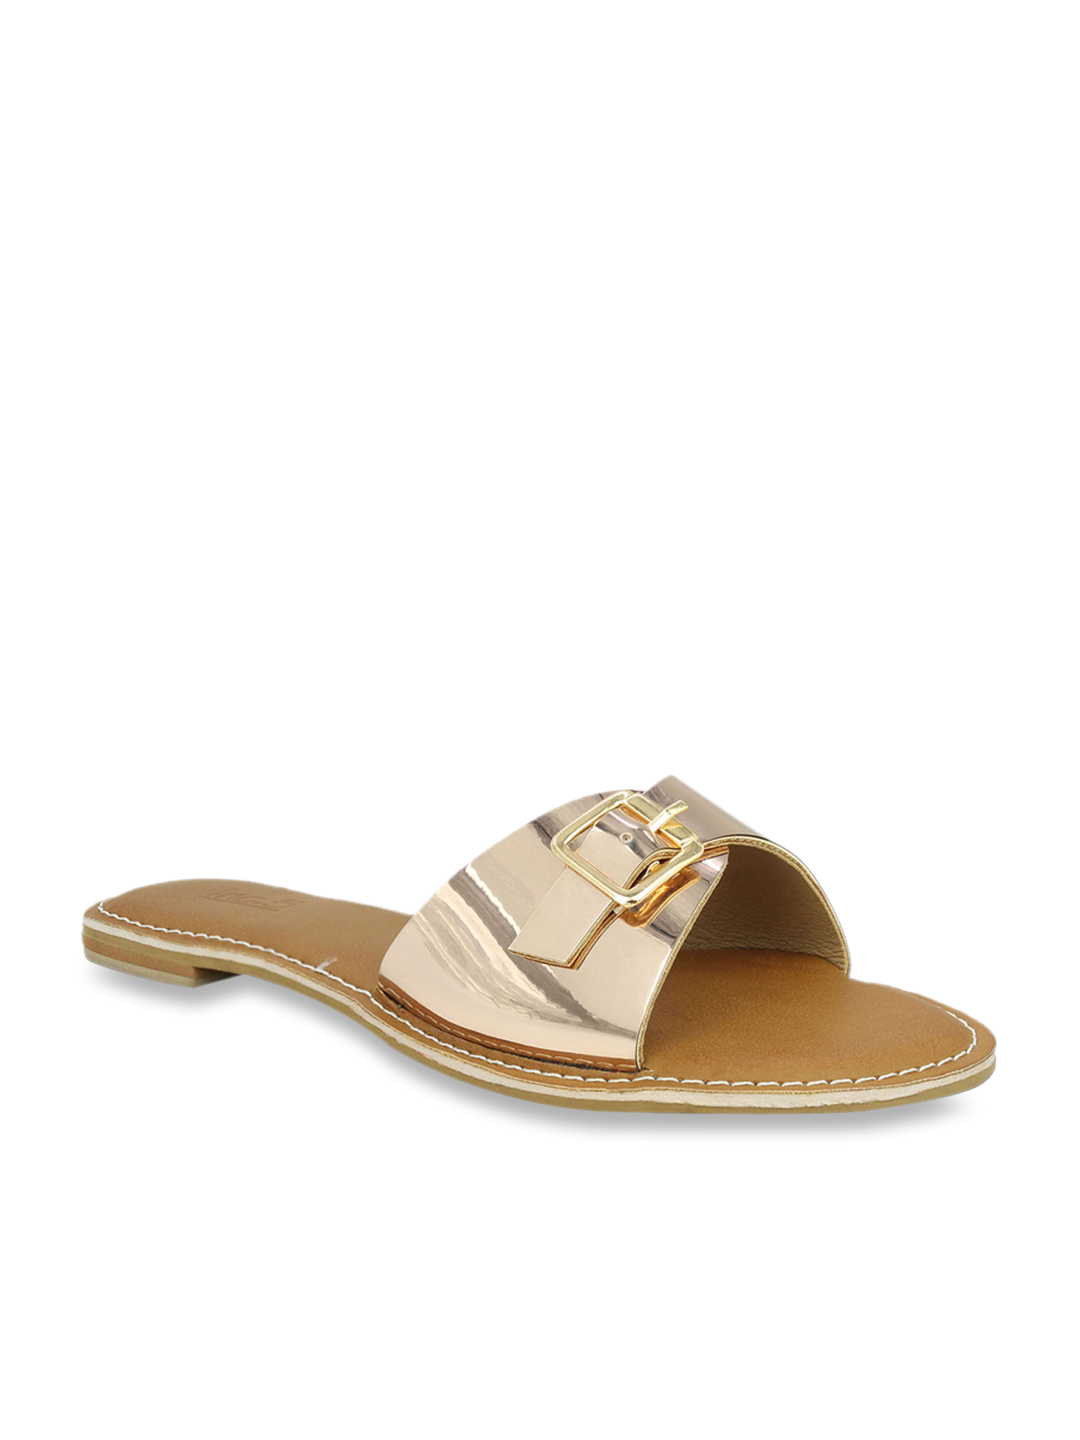 Inc.5 Rose Gold Casual Sandals from Inc